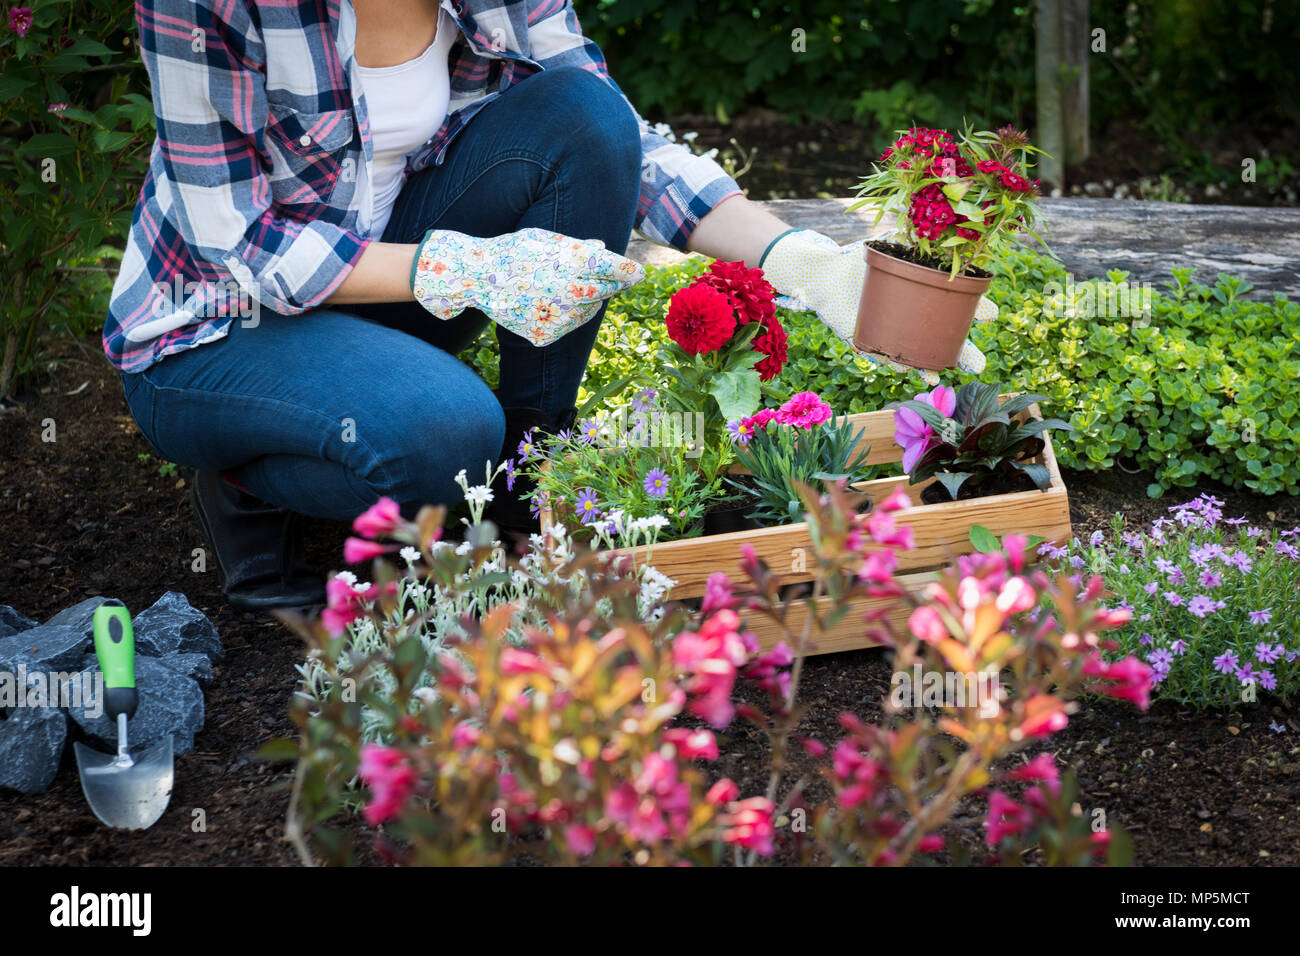 Unrecognisable female gardener holding beautiful flower ready to be planted in a garden. Gardening concept. Garden Landscaping business start up. - Stock Image